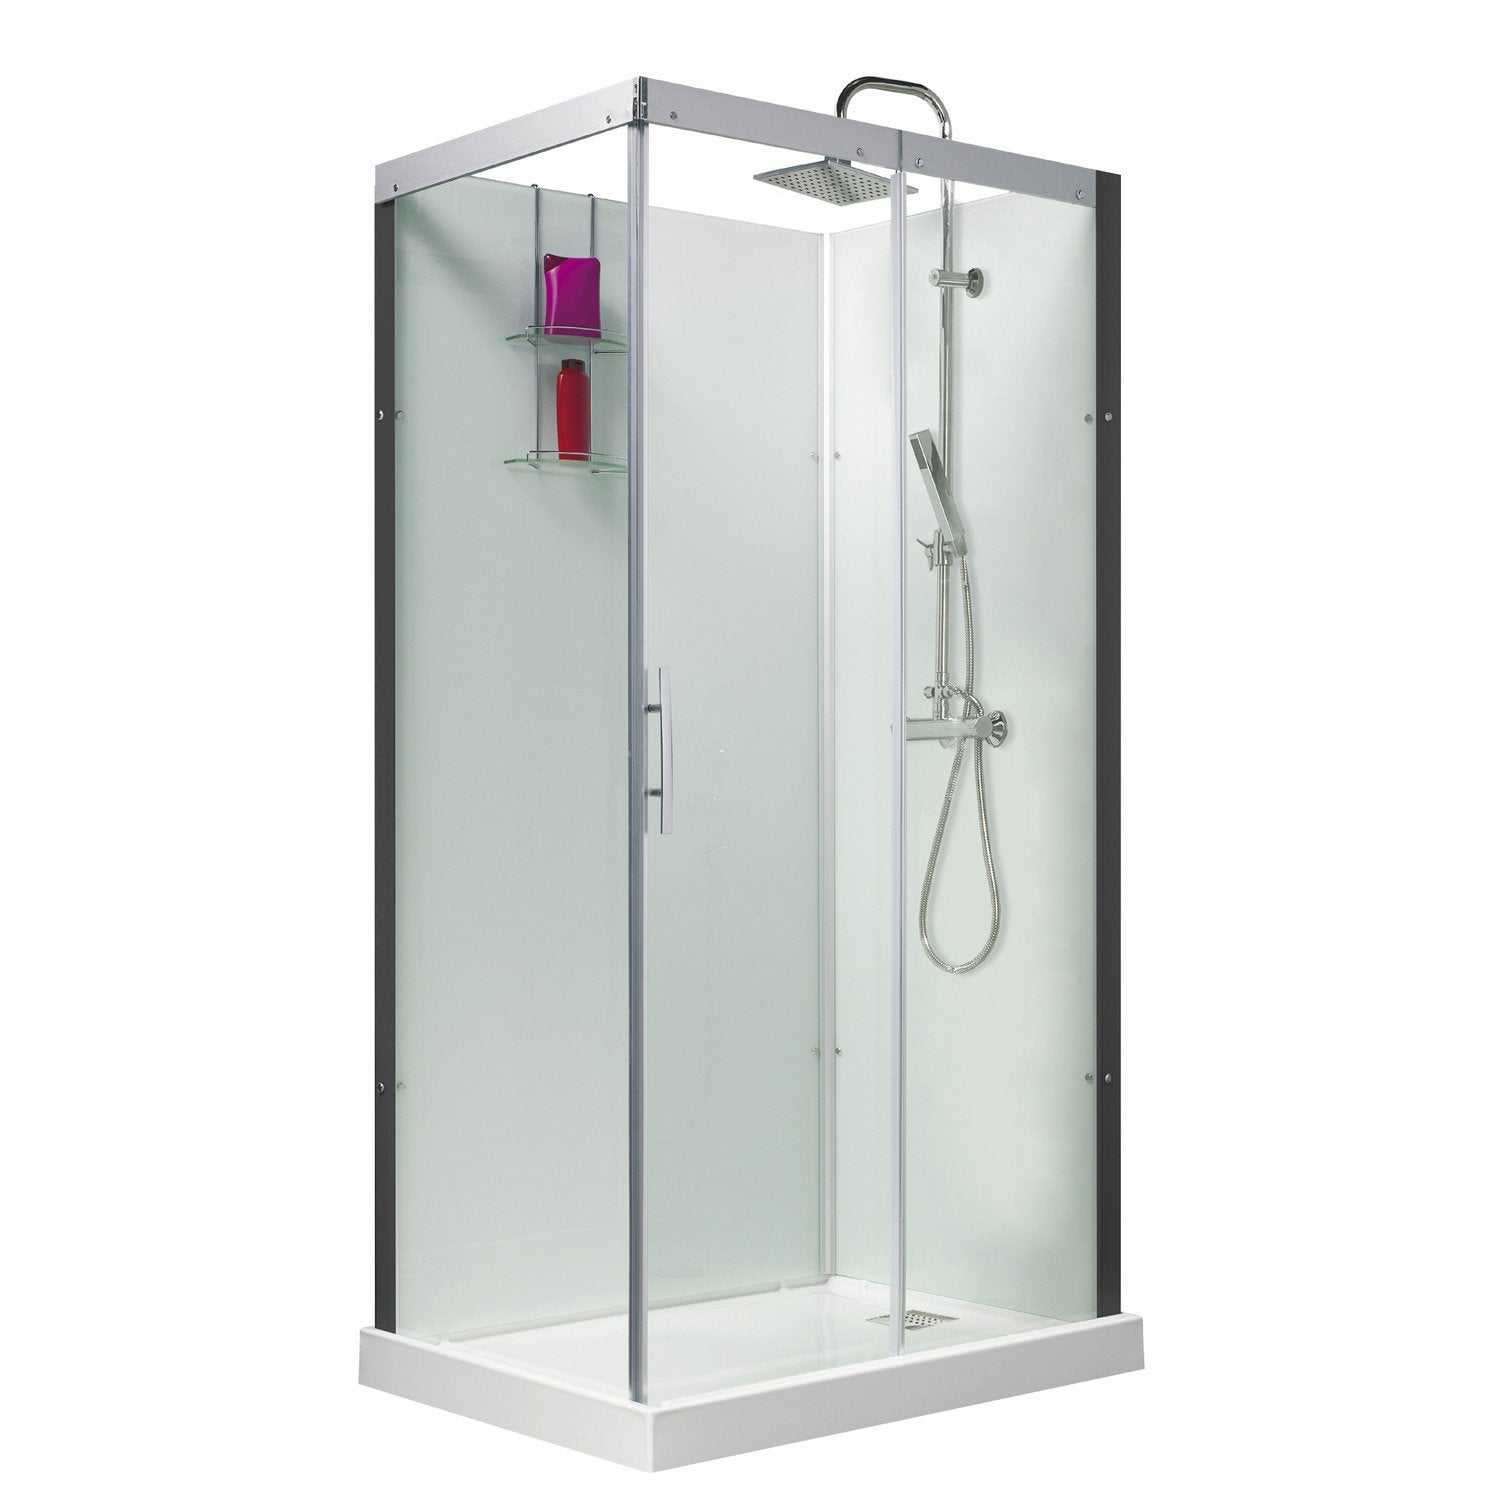 Cabine de douche rectangulaire 110x80 cm thalaglass 2 for Leroy merlin porte douche